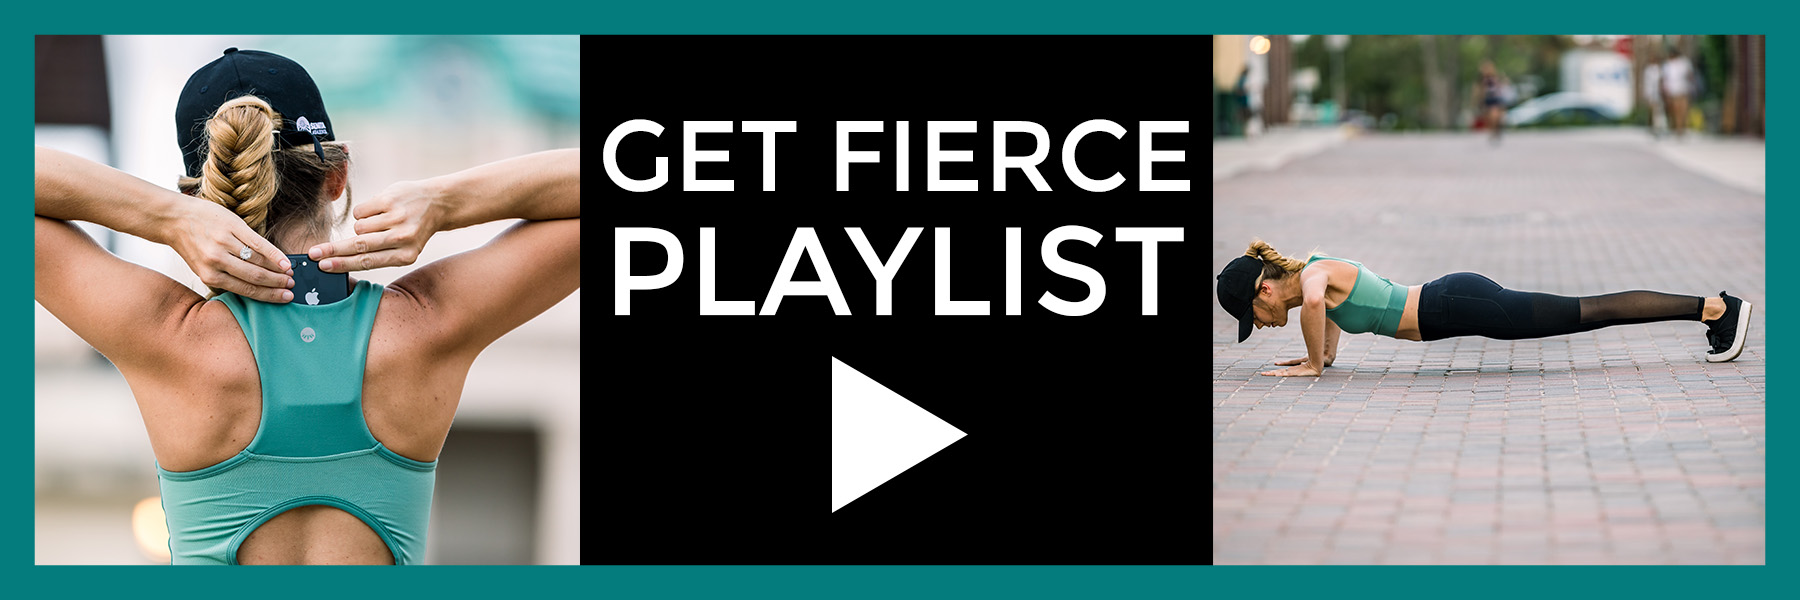 GET FIERCE!! Power Playlist Workout Playlist! #playlist #getpumped #workoutplaylist